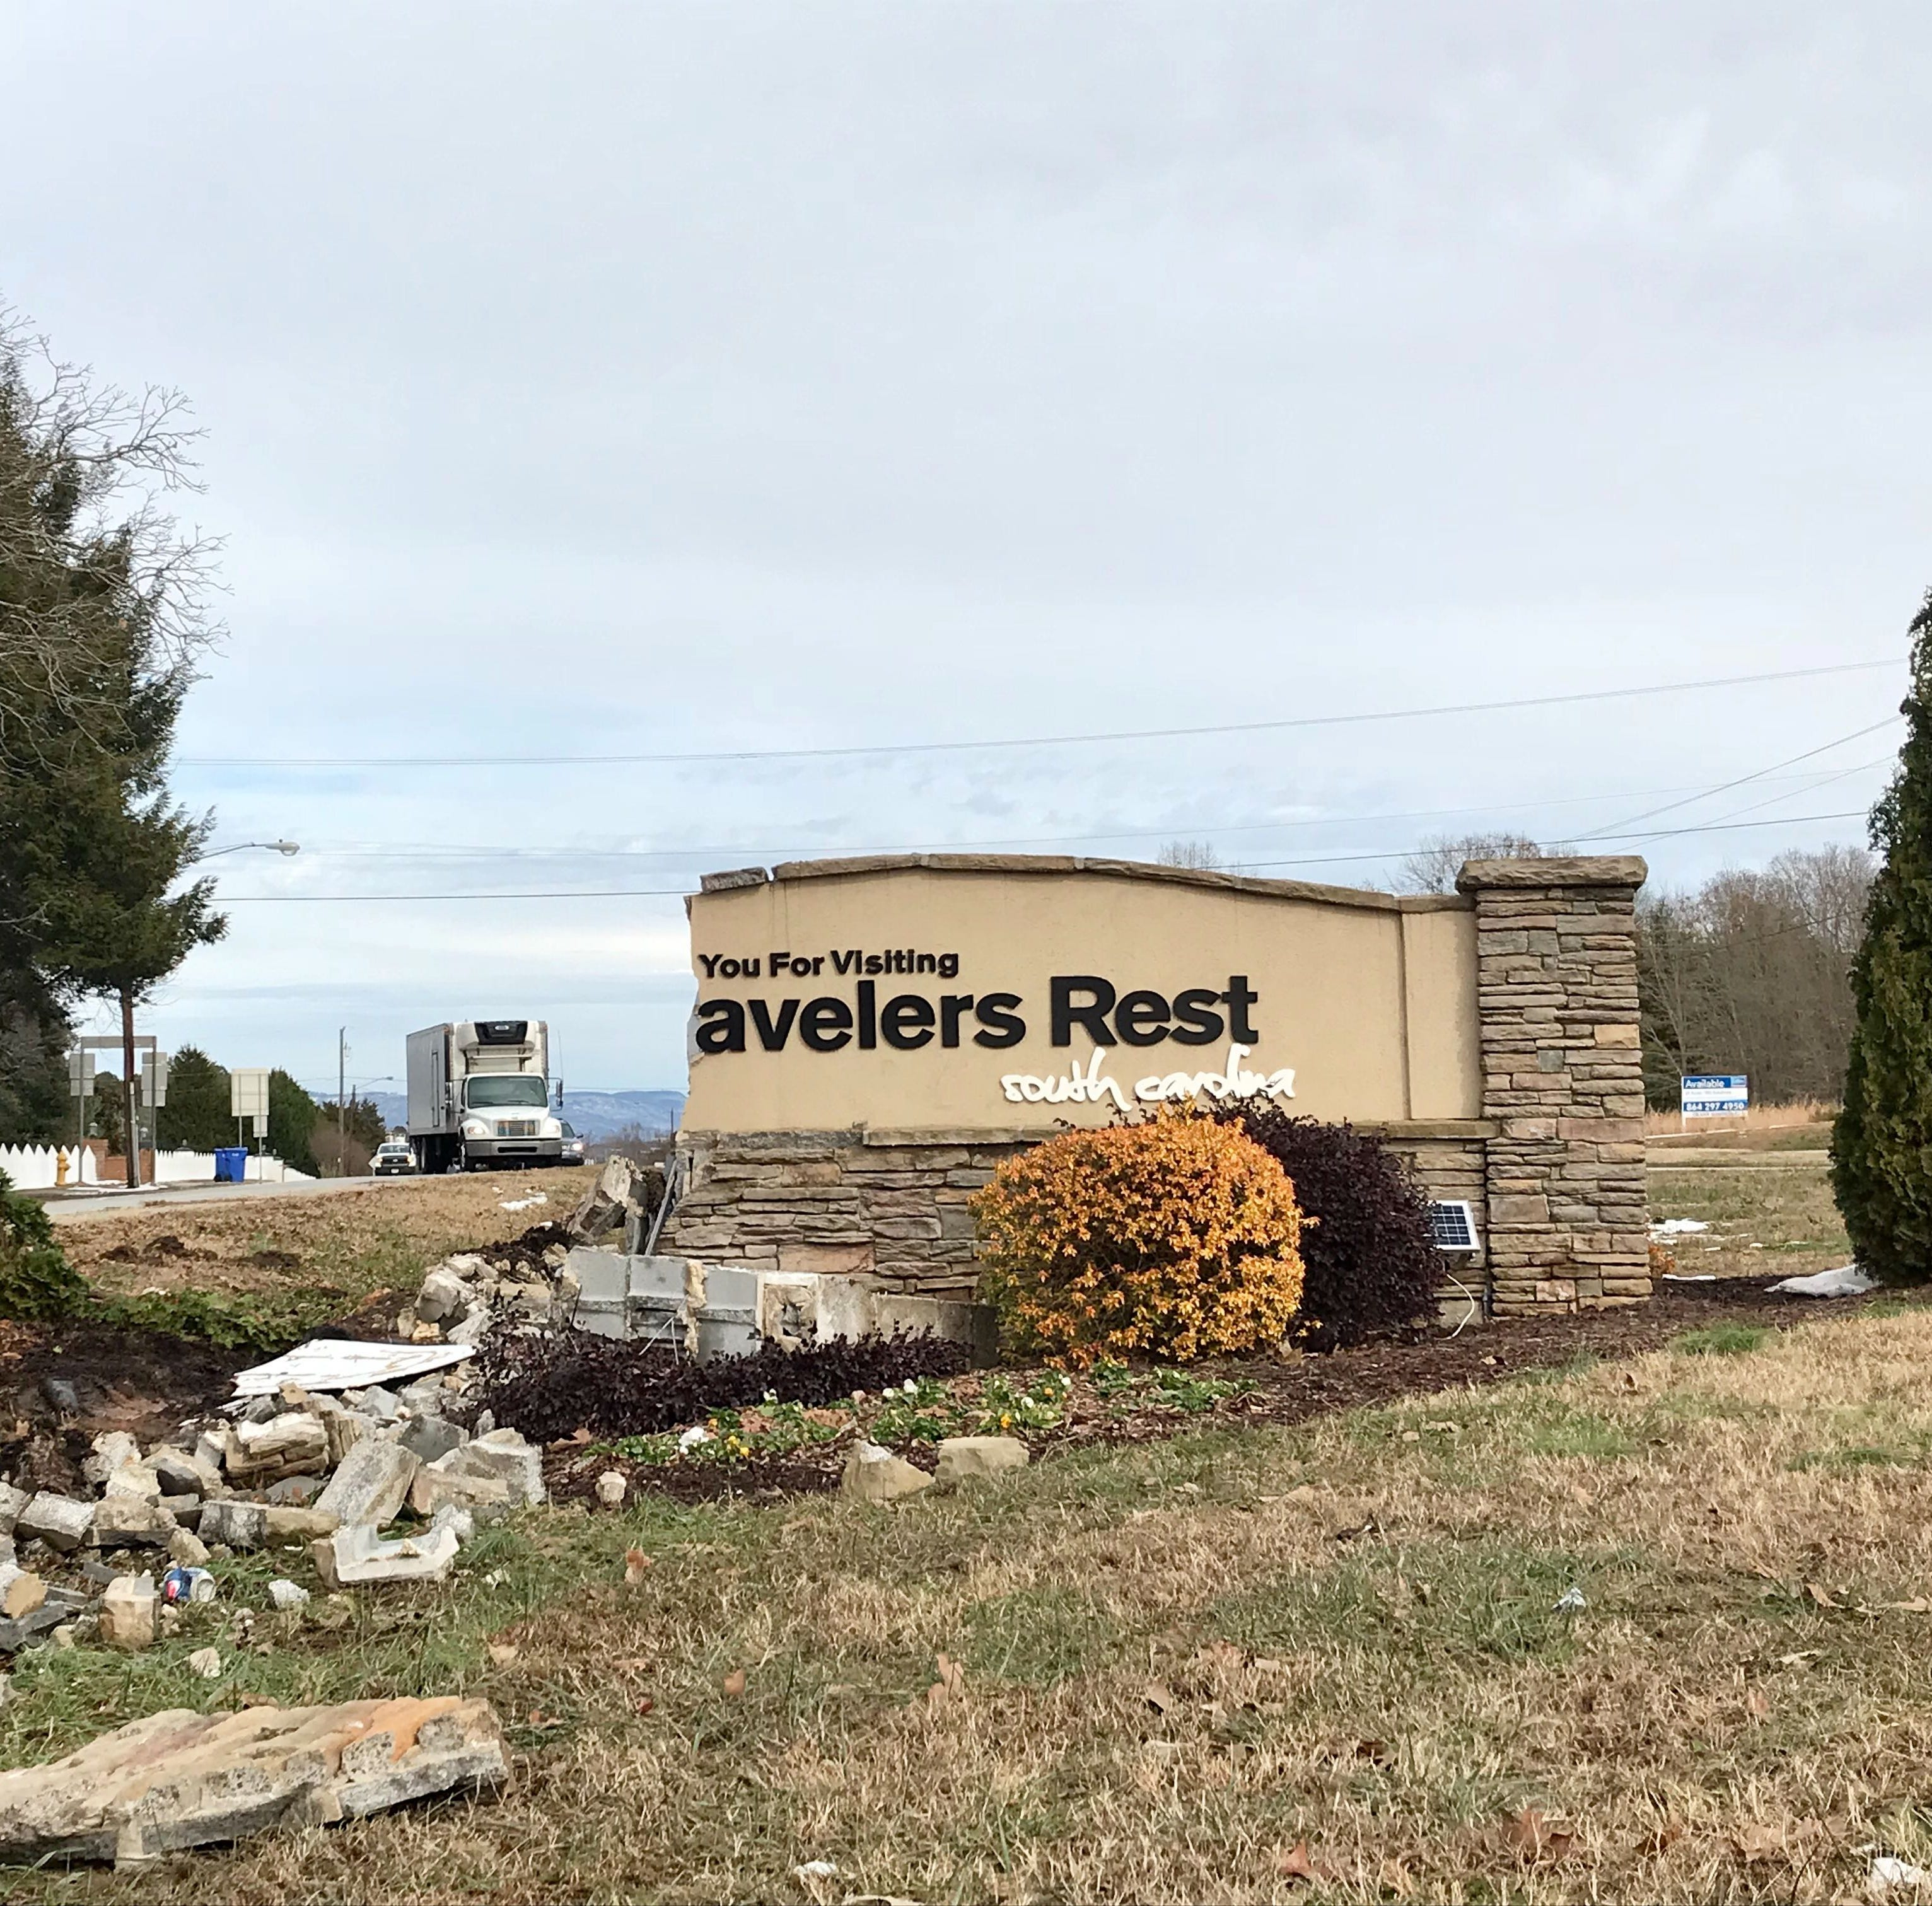 A tractor-trailer totaled the Travelers Rest welcome sign. Here's what we know